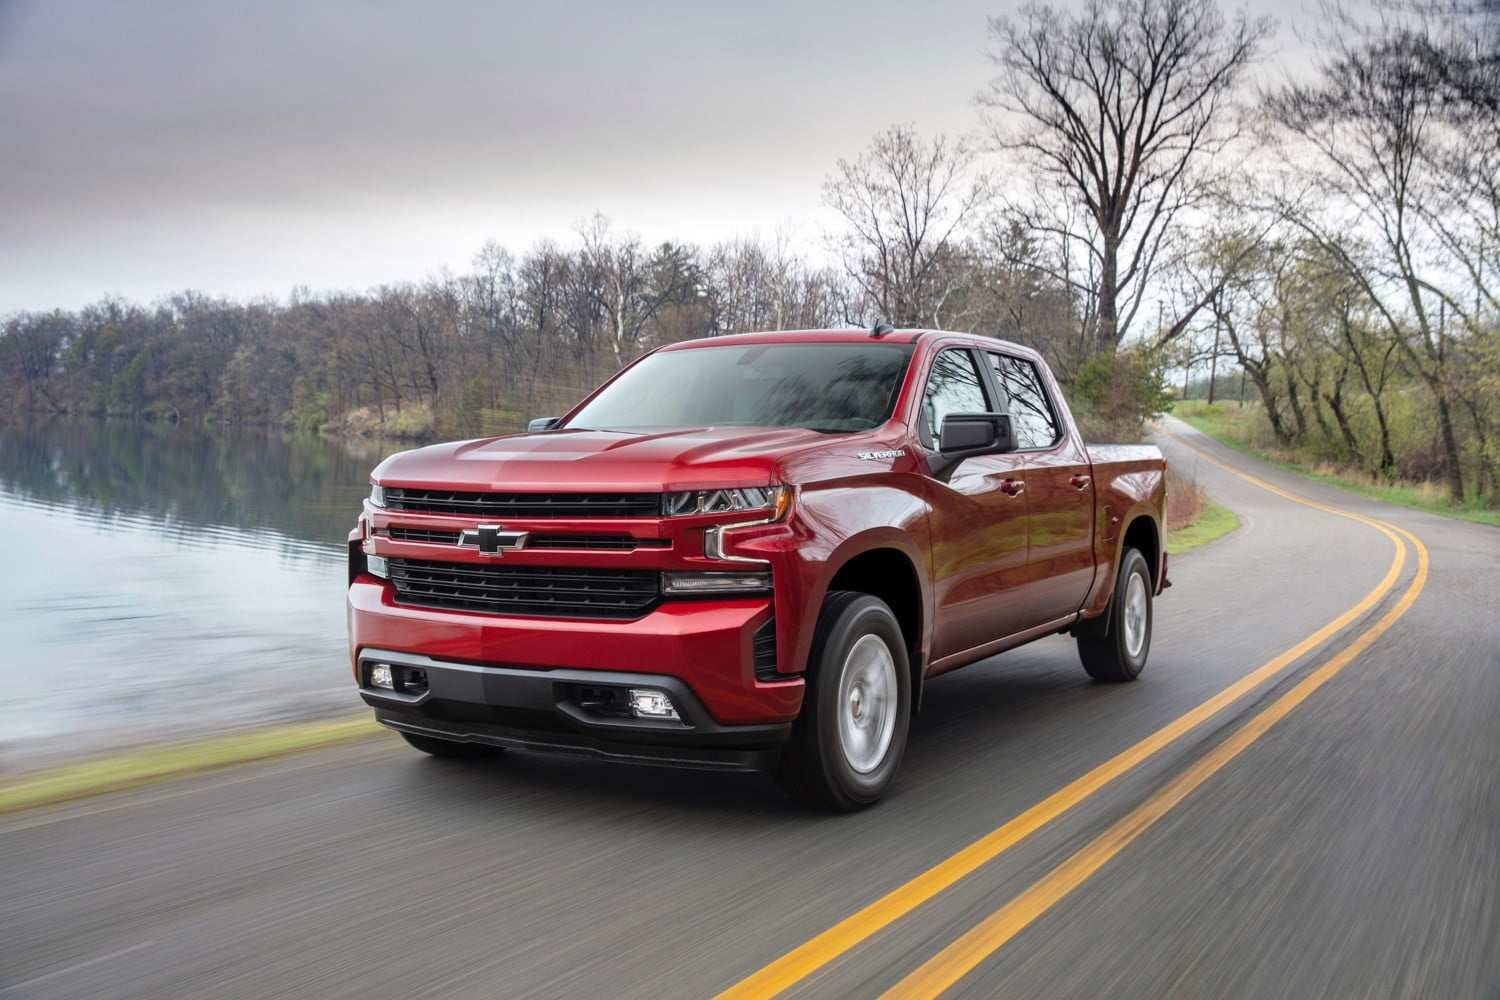 46 Great New Gmc 2019 Silverado Review Review by New Gmc 2019 Silverado Review